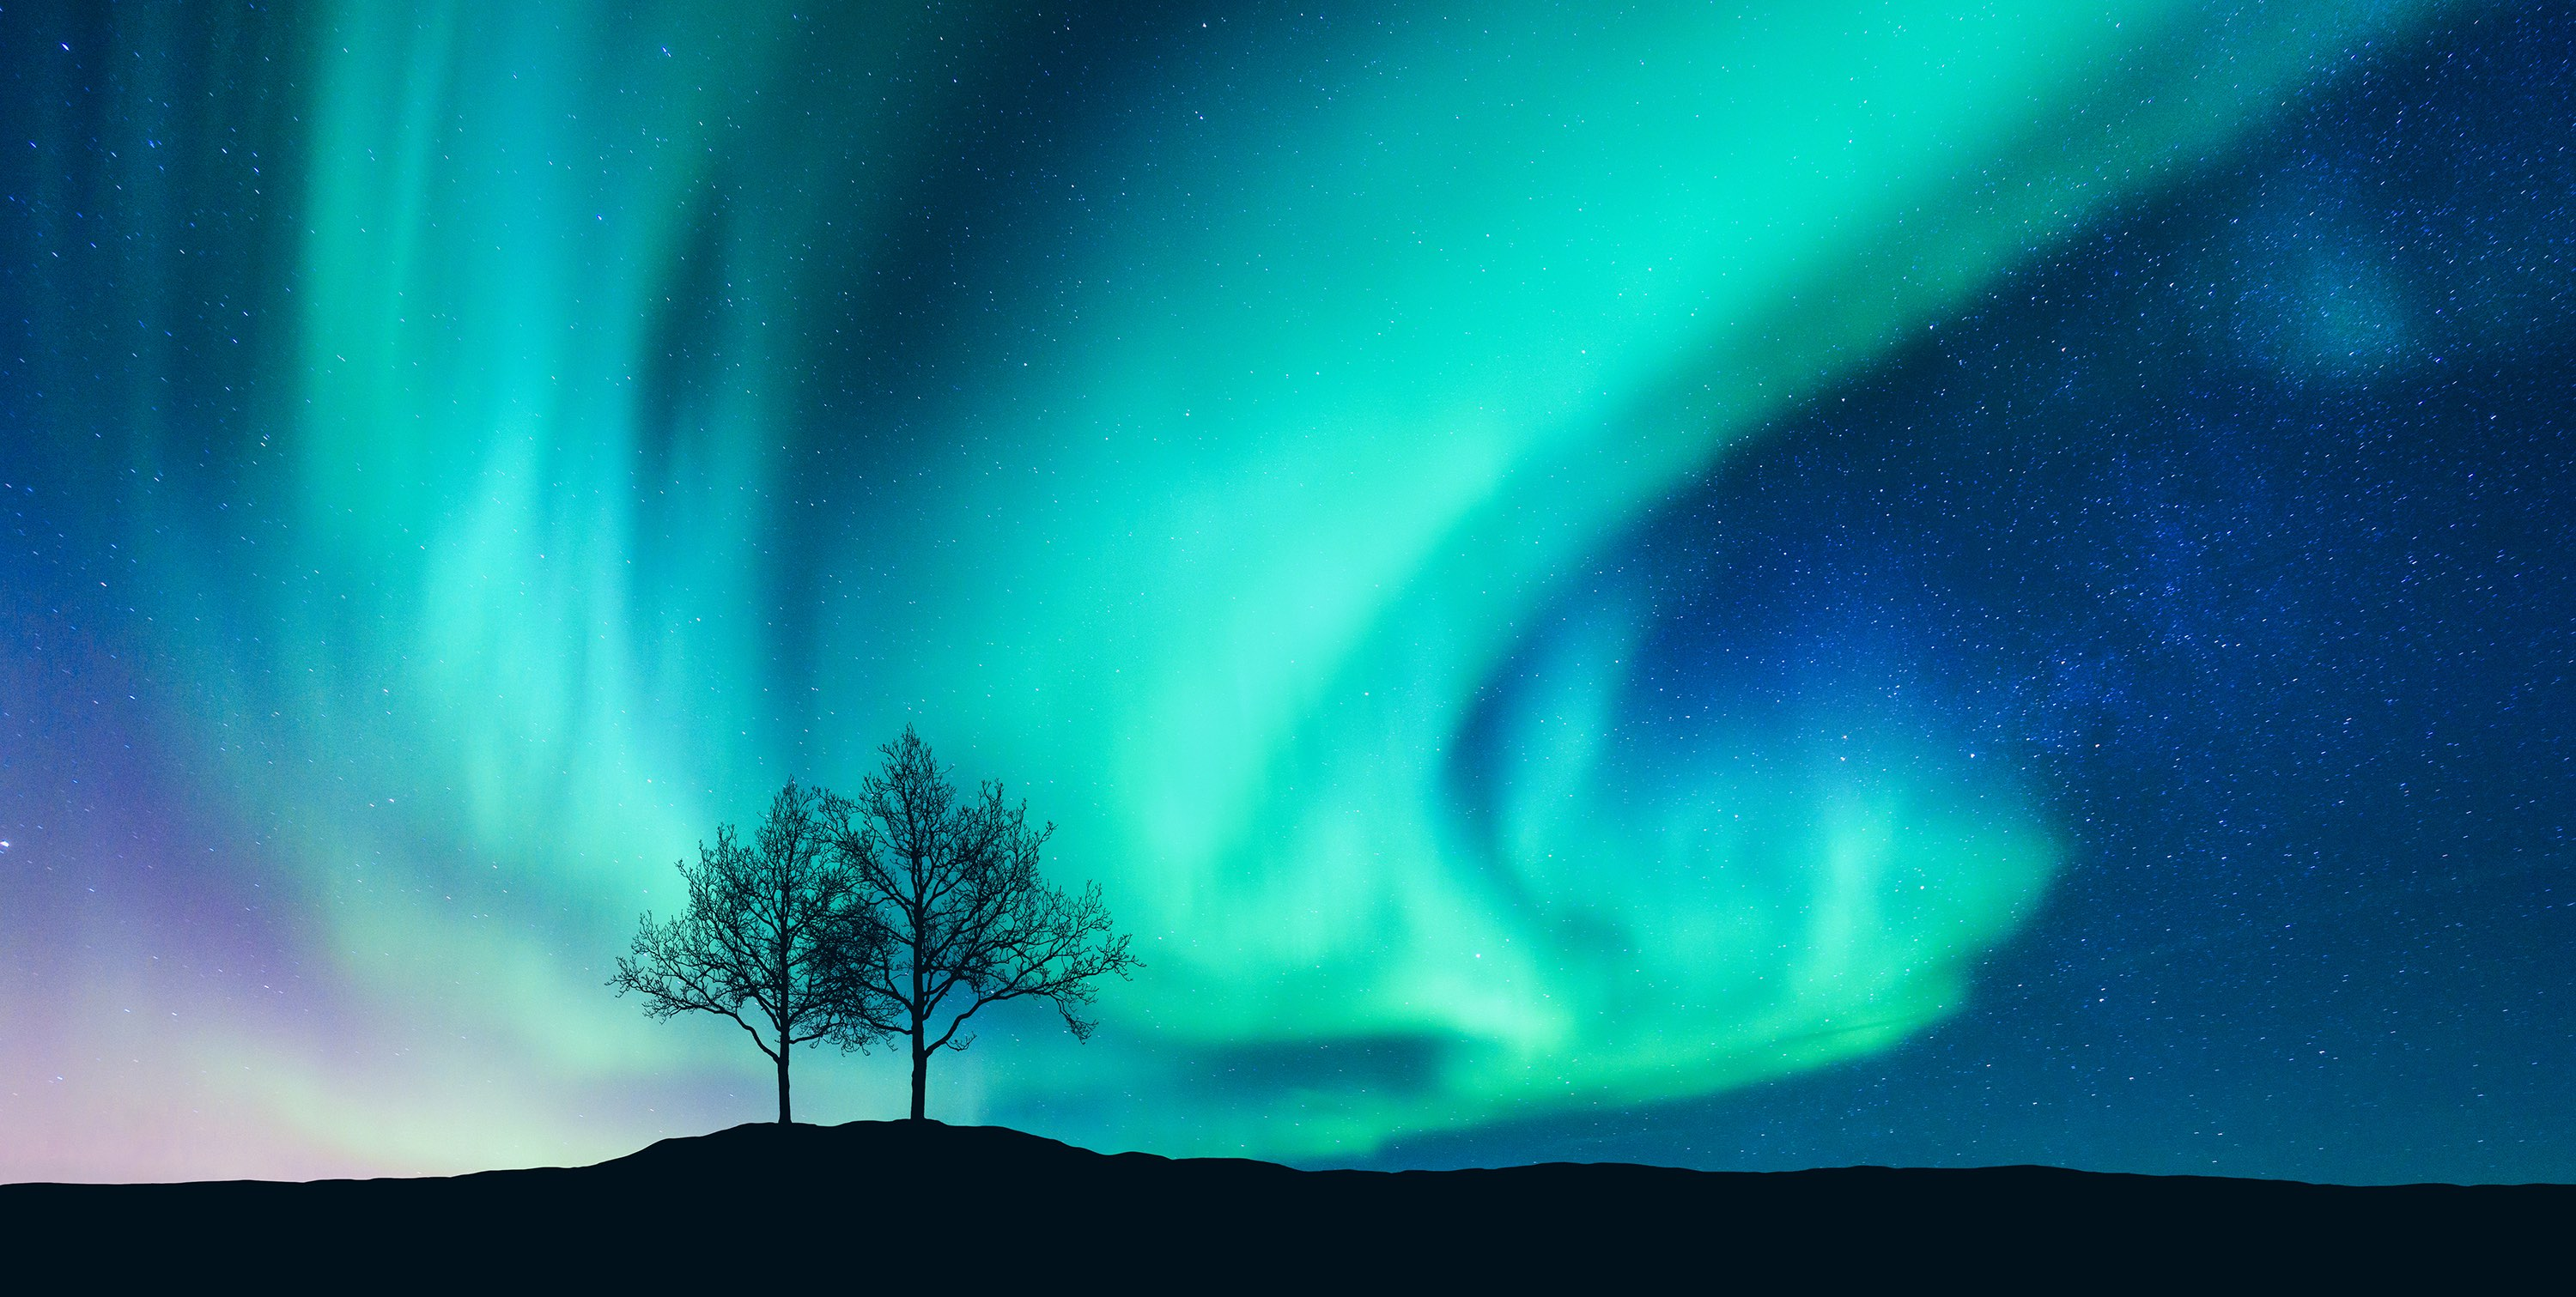 Aurora borealis (Northern Lights).